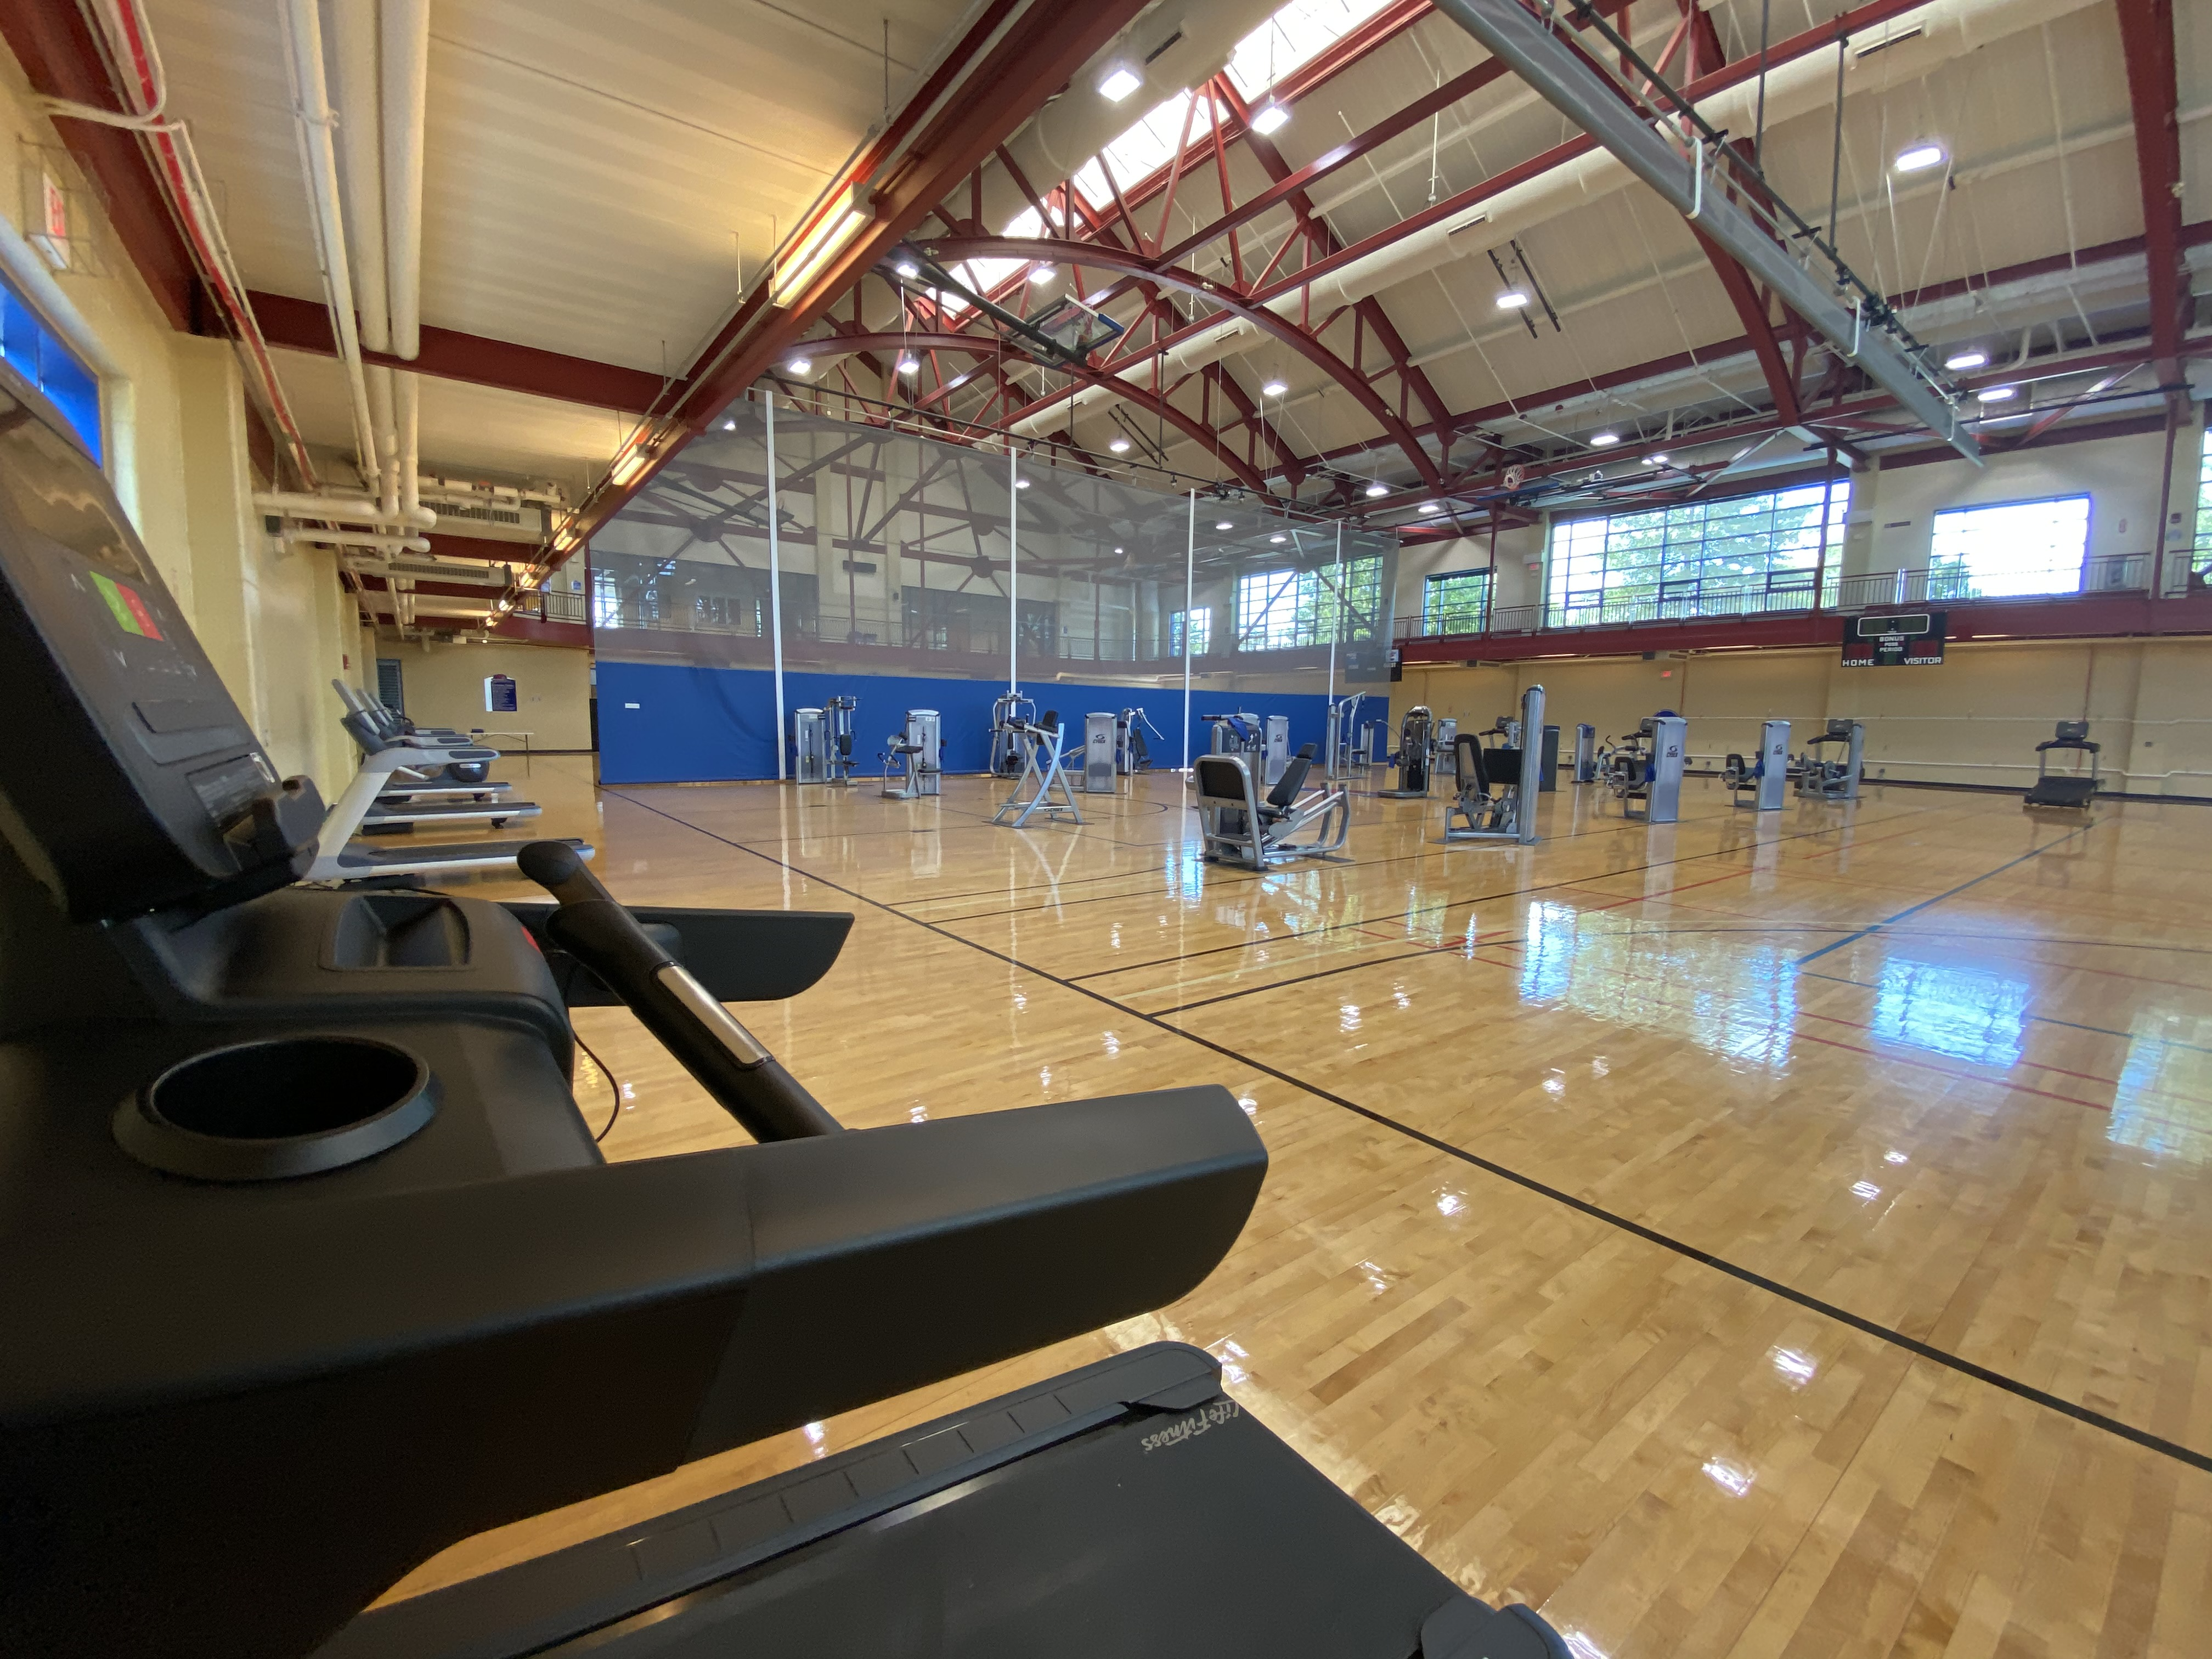 Spaced exercise equipment on basketball courts